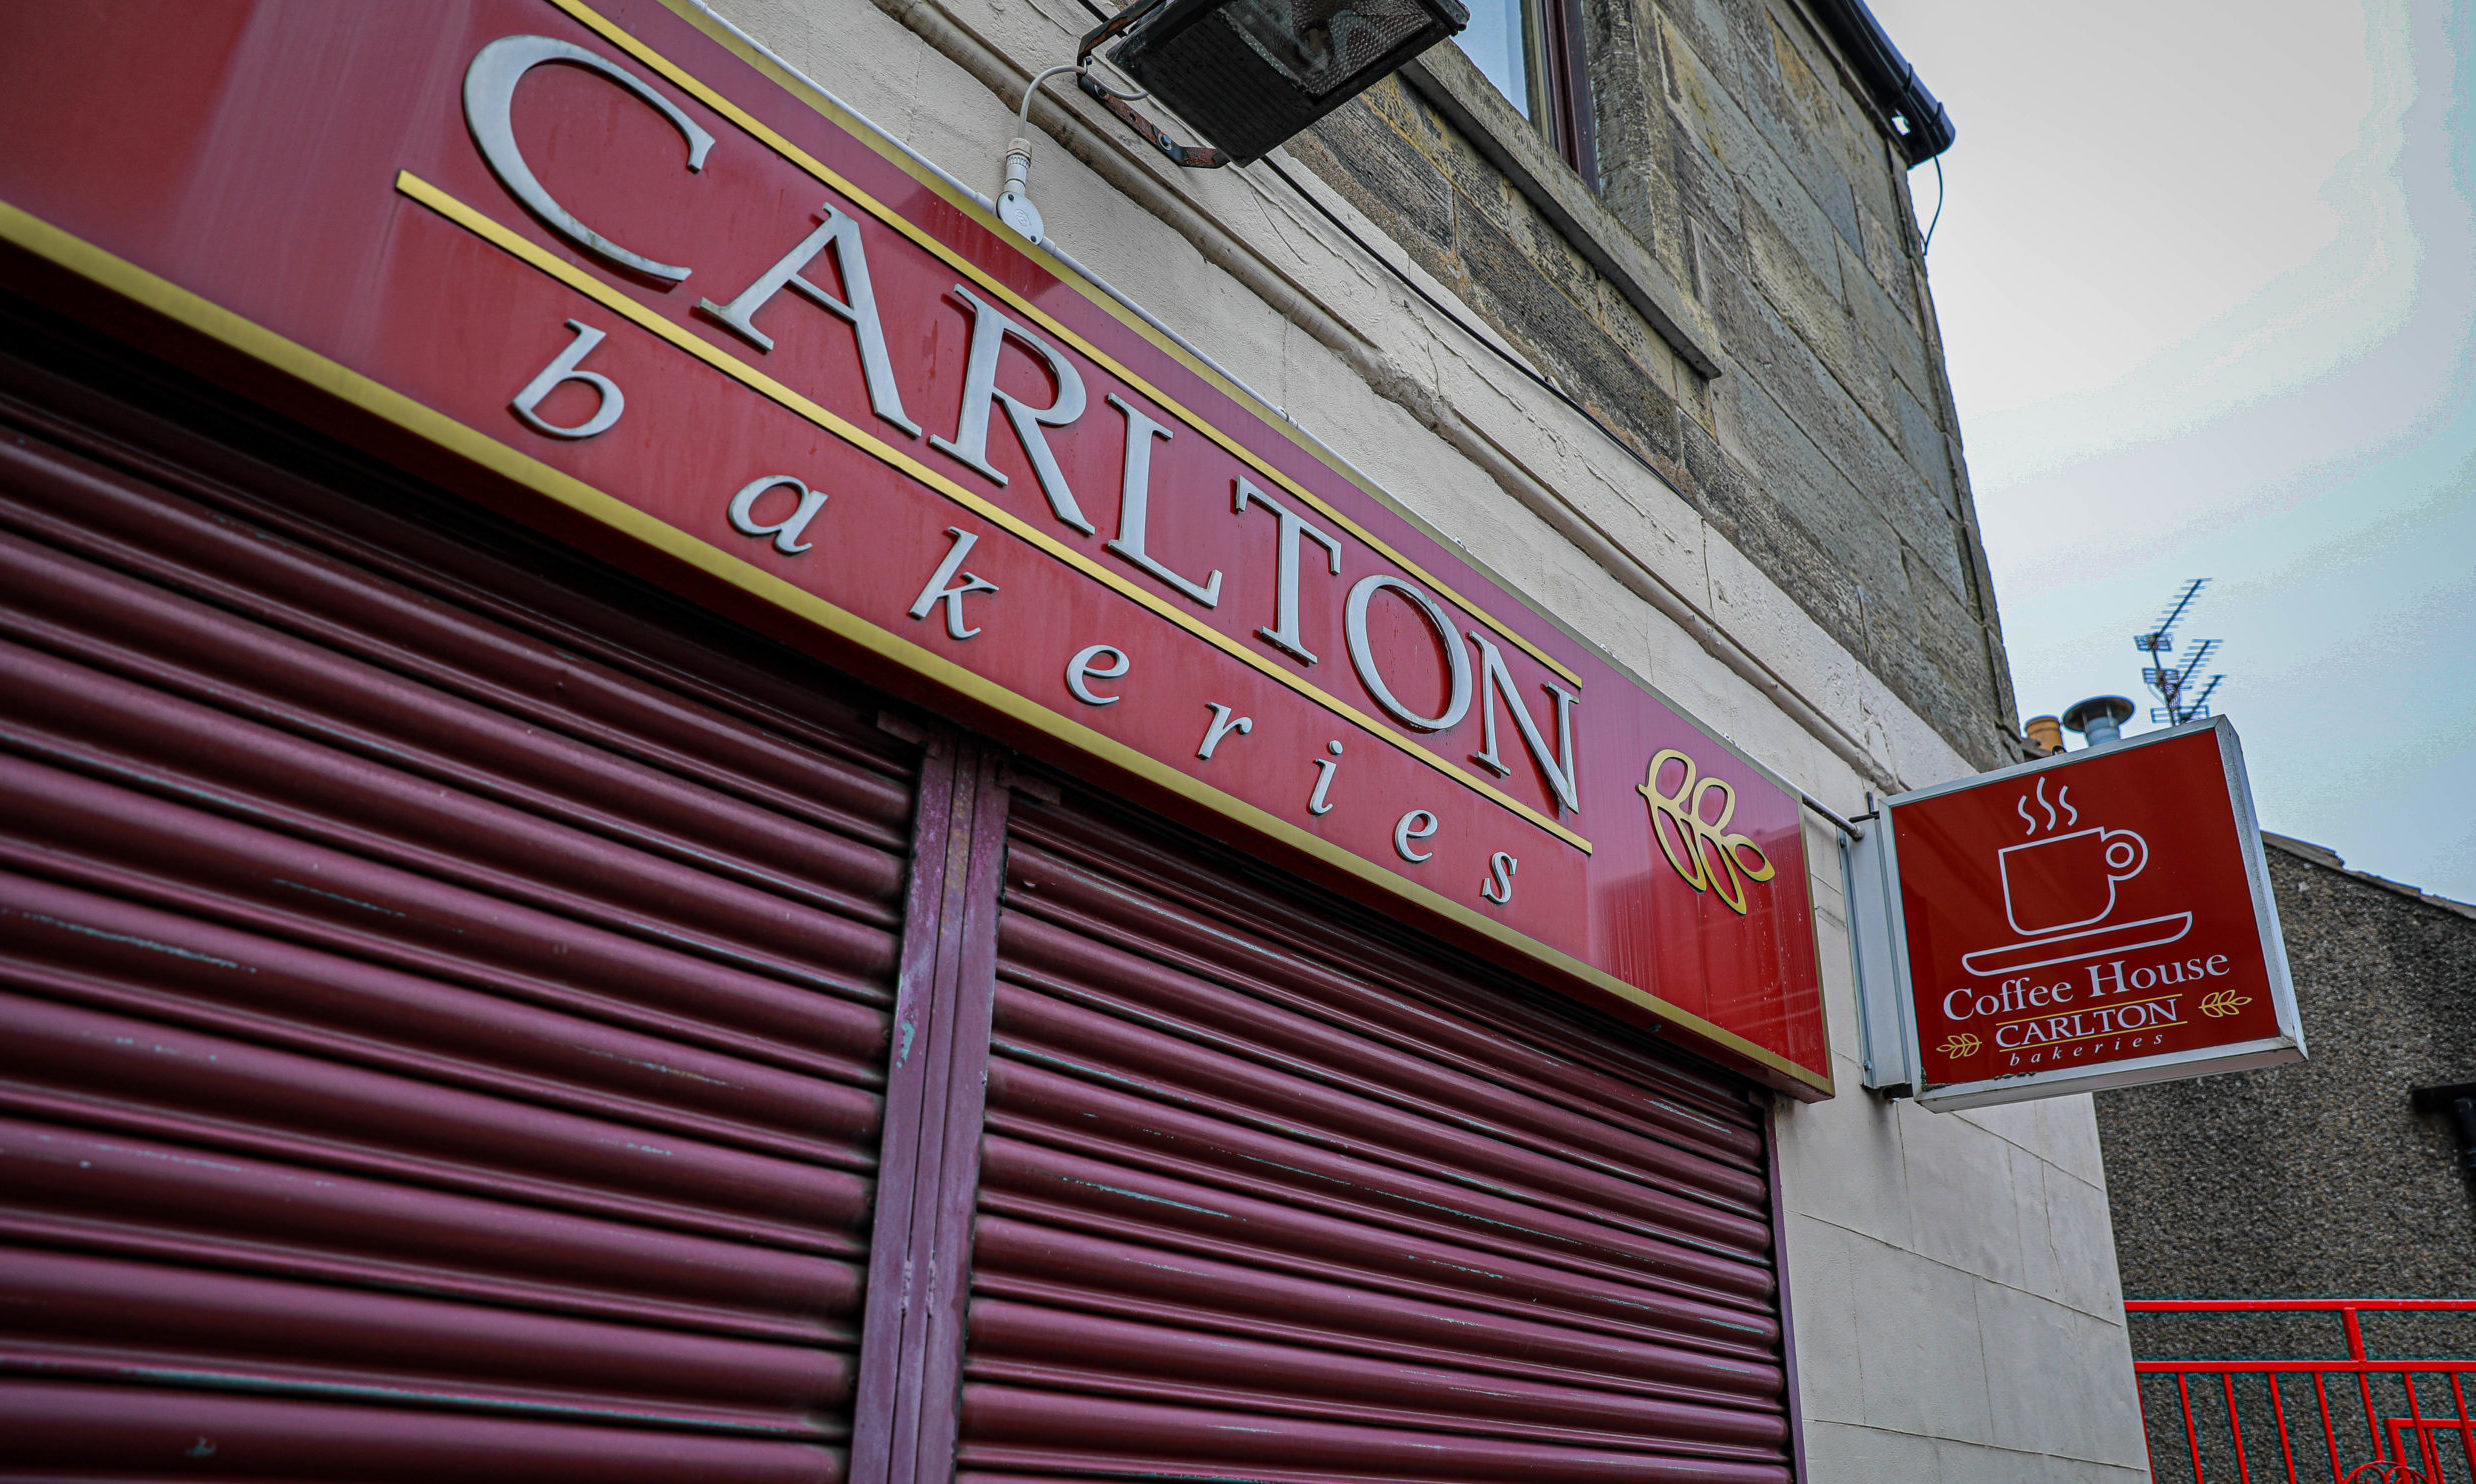 Carlton Bakery went into liquidation last week with the loss of 60 jobs.